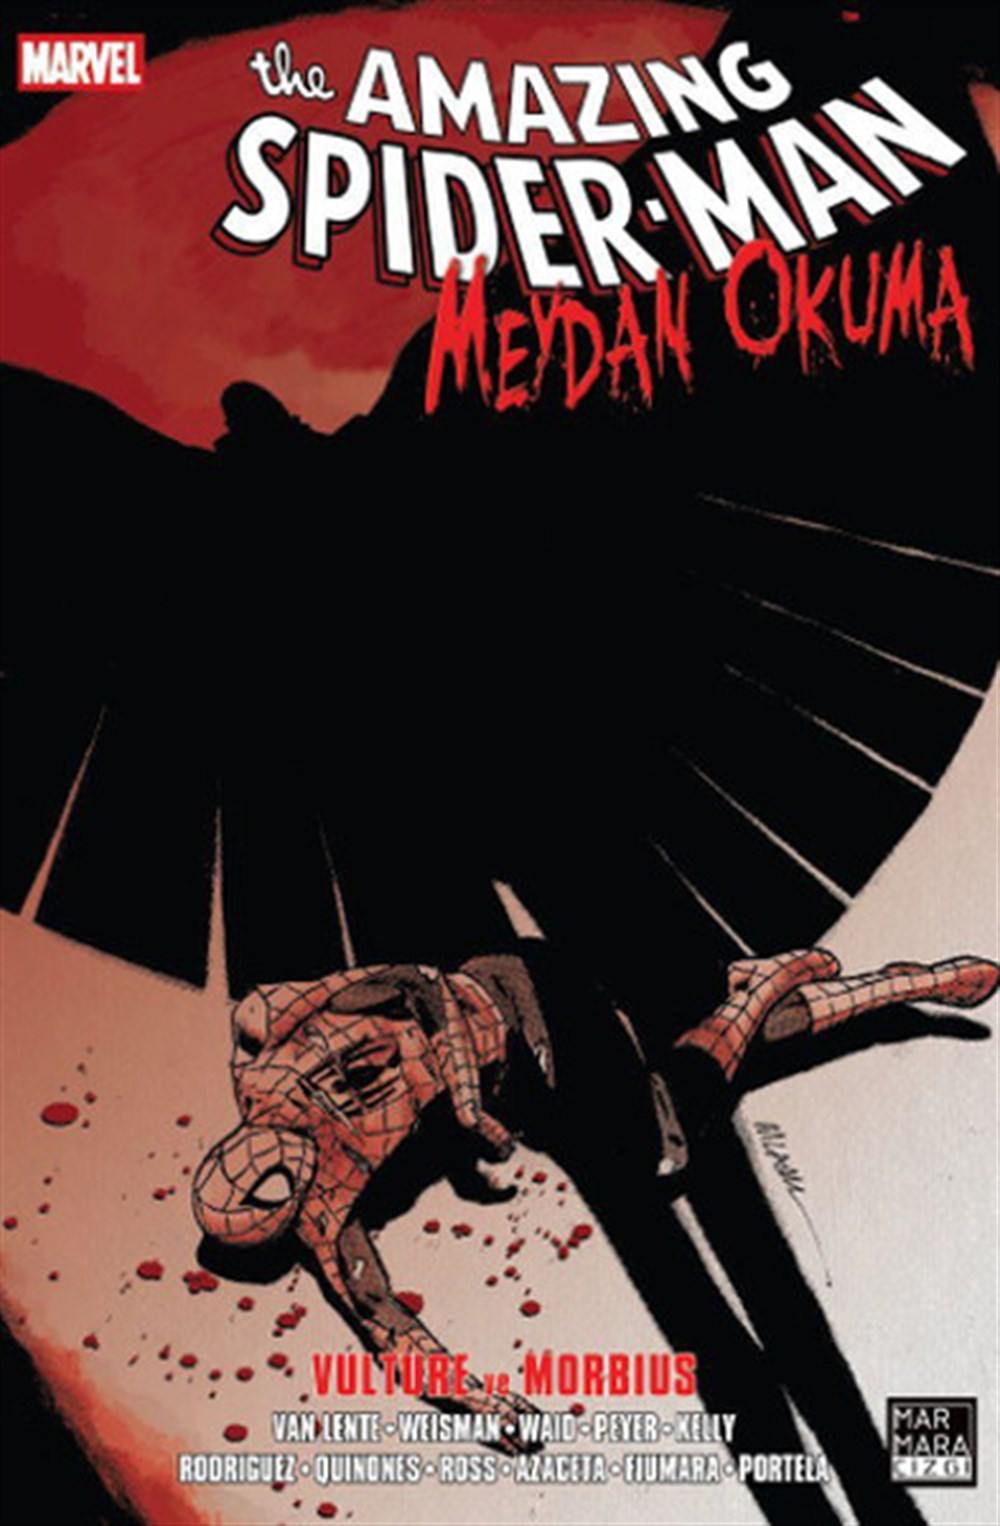 The Amazing Spider-Man Cilt 16: Meydan Okuma